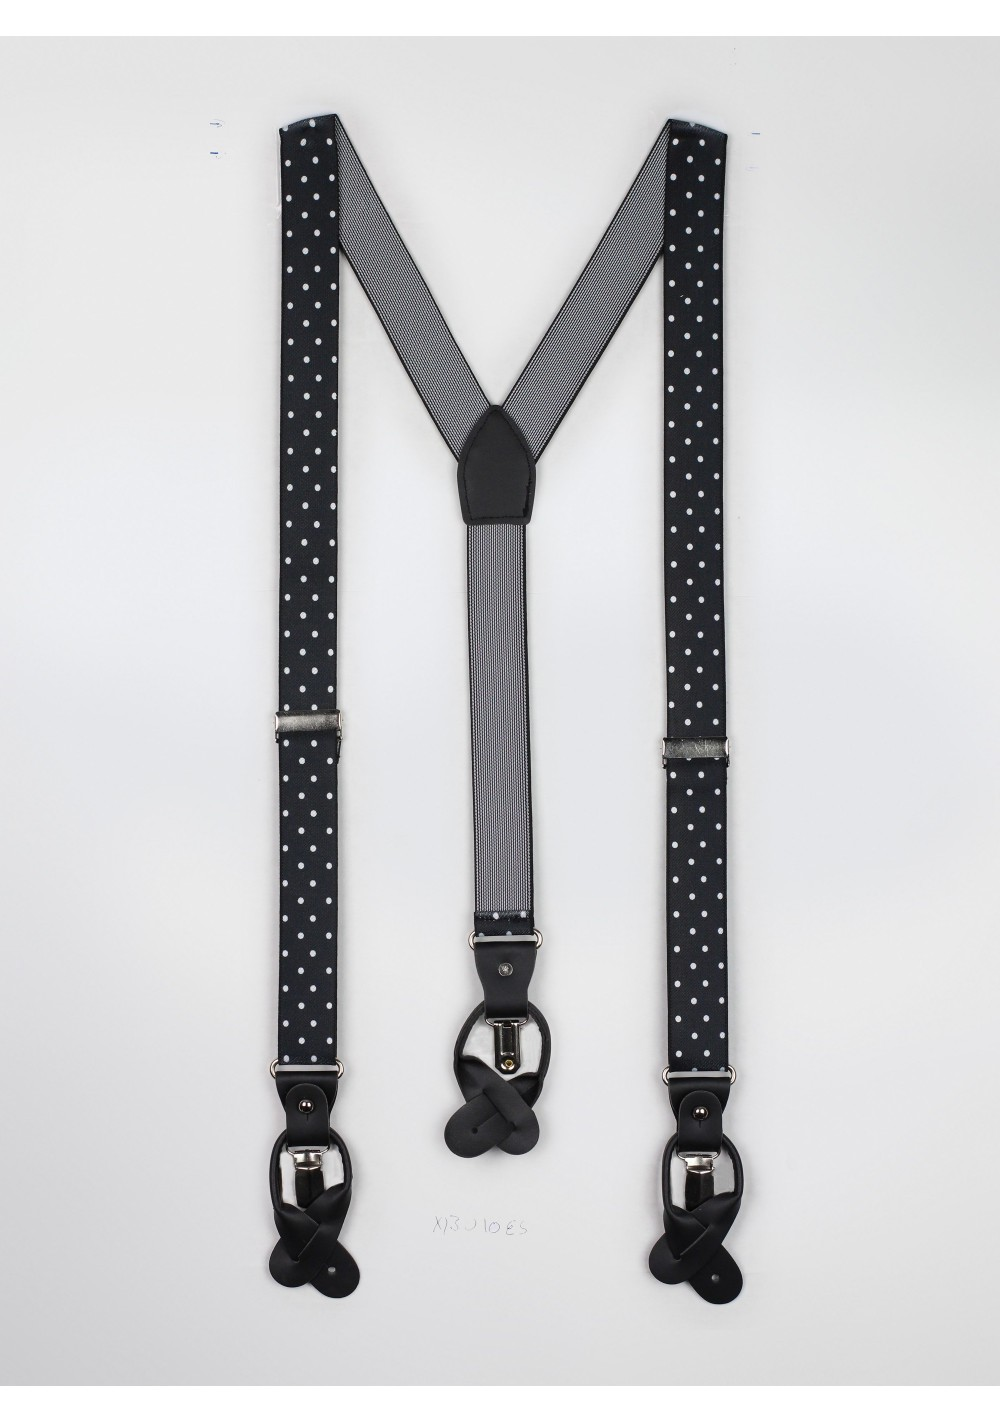 black suspenders with large white polka dots